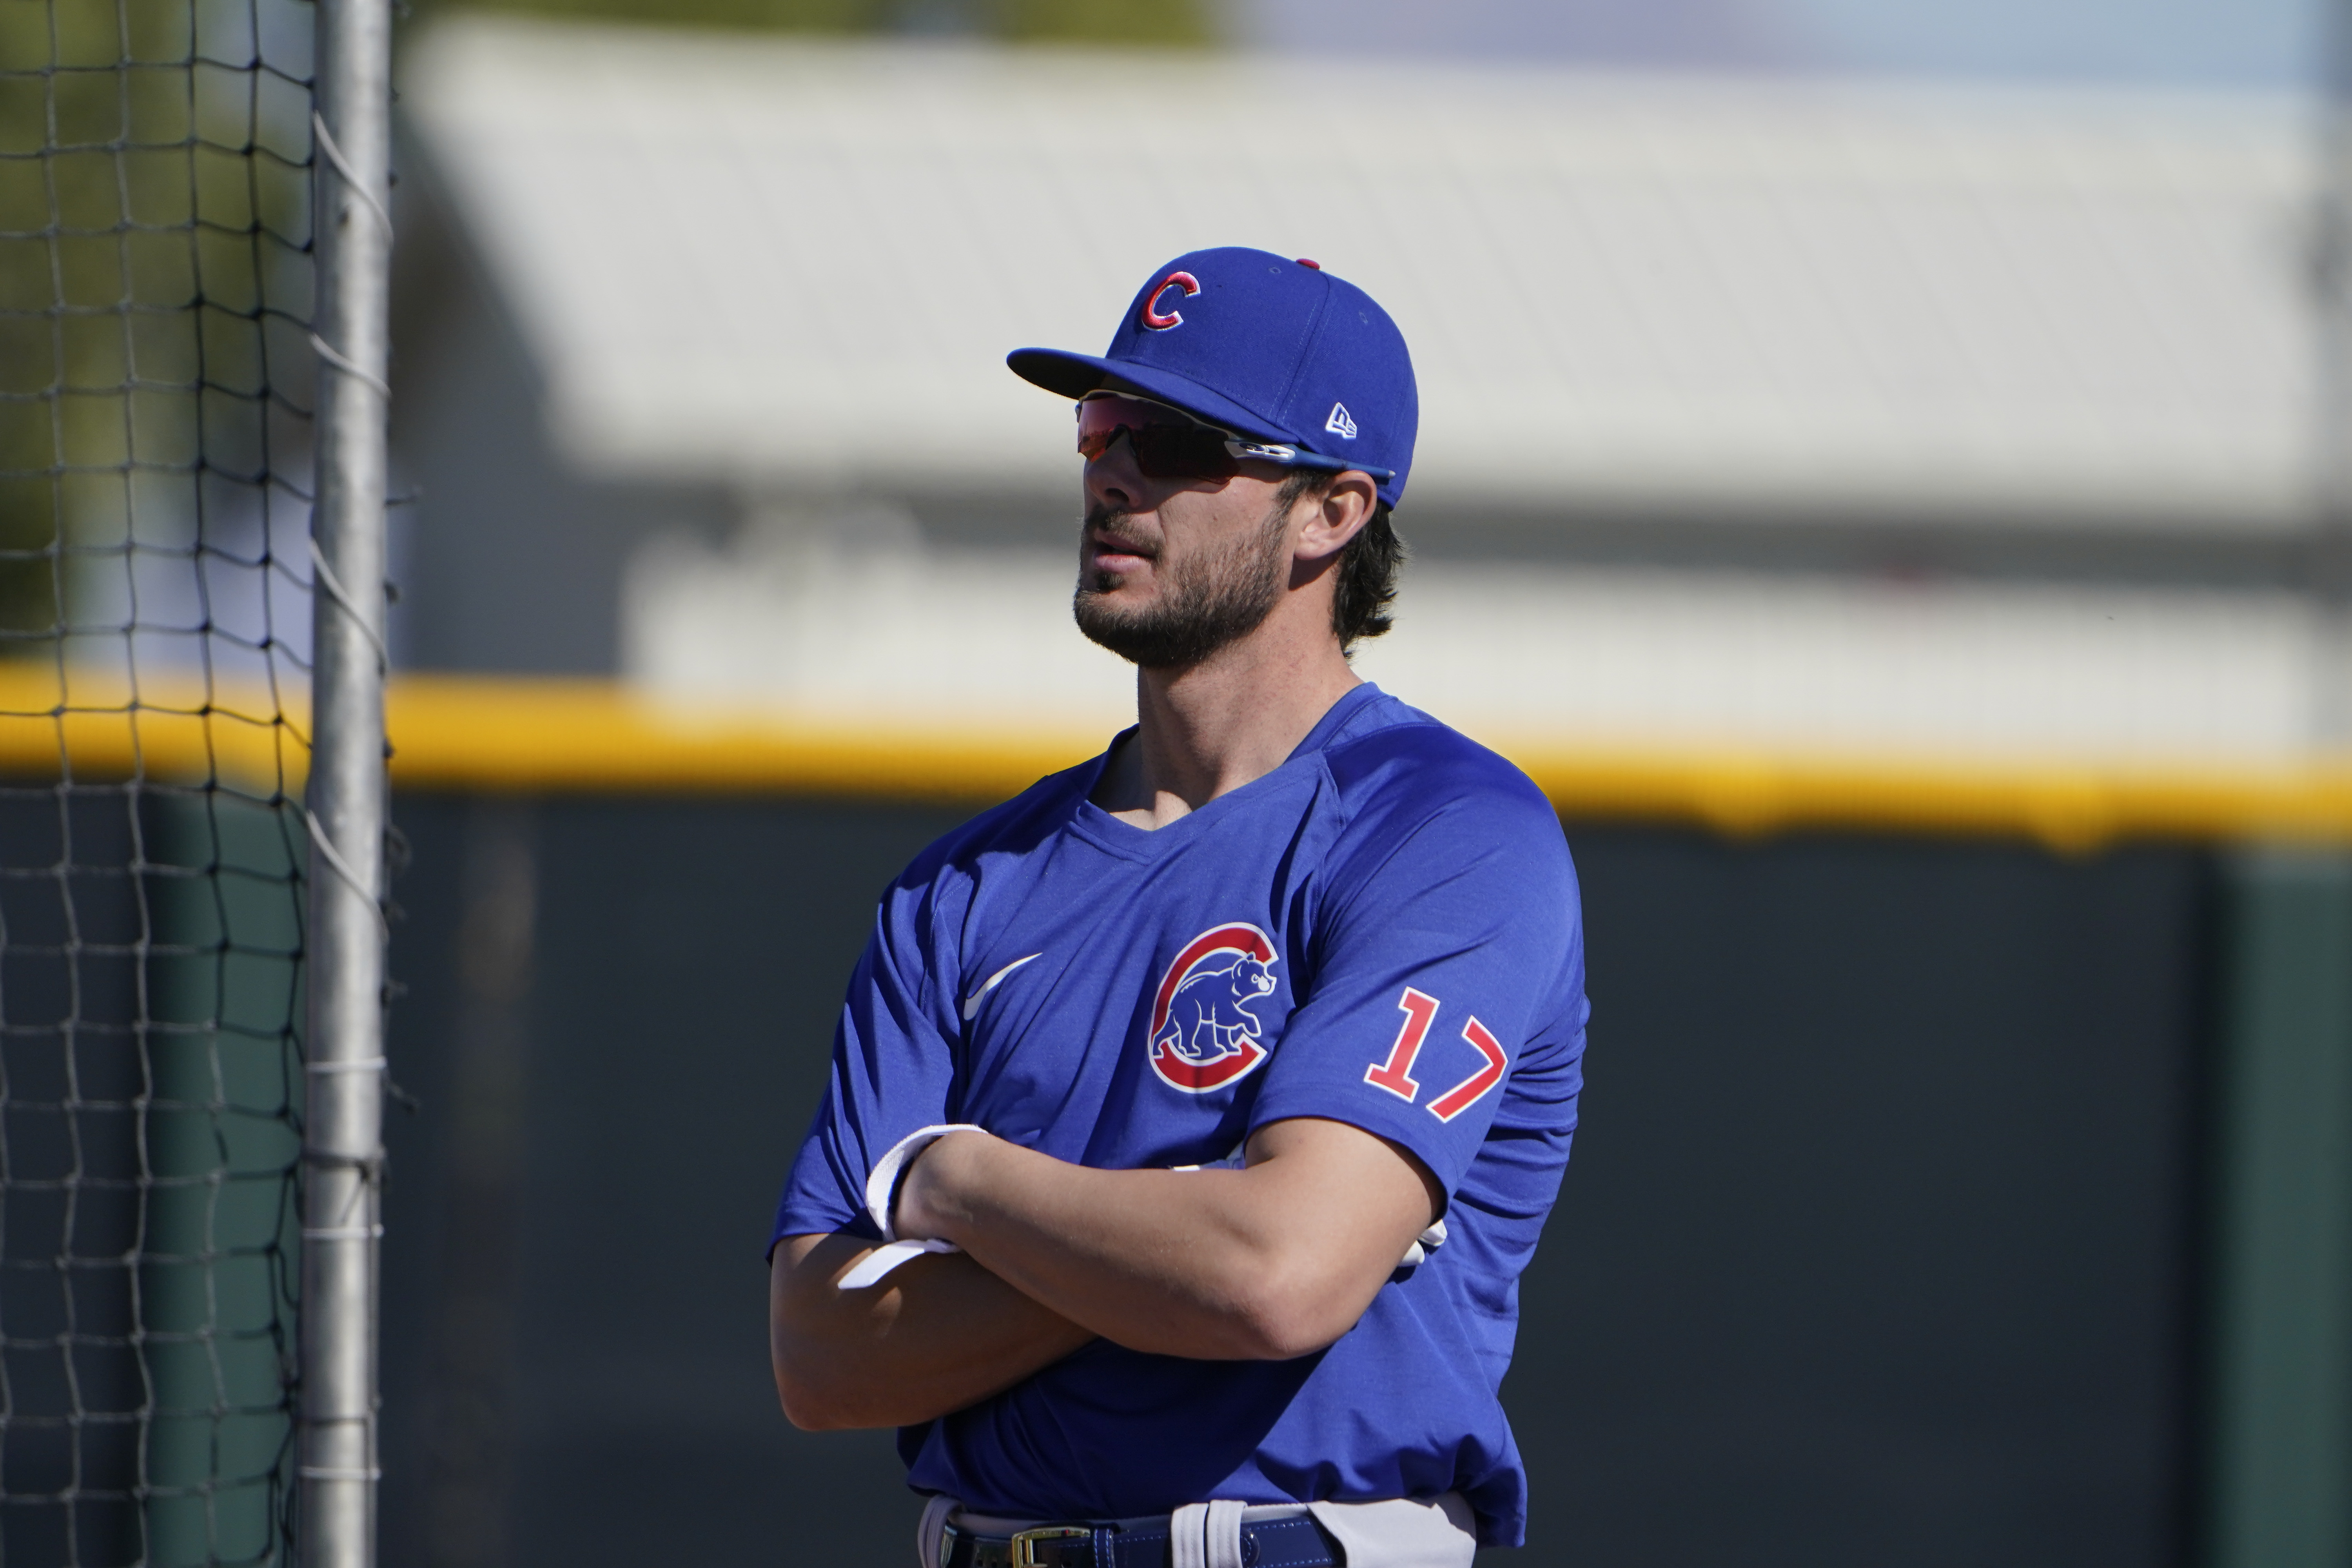 The Cubs' Kris Bryant has learned to brush off trade rumors over the years.